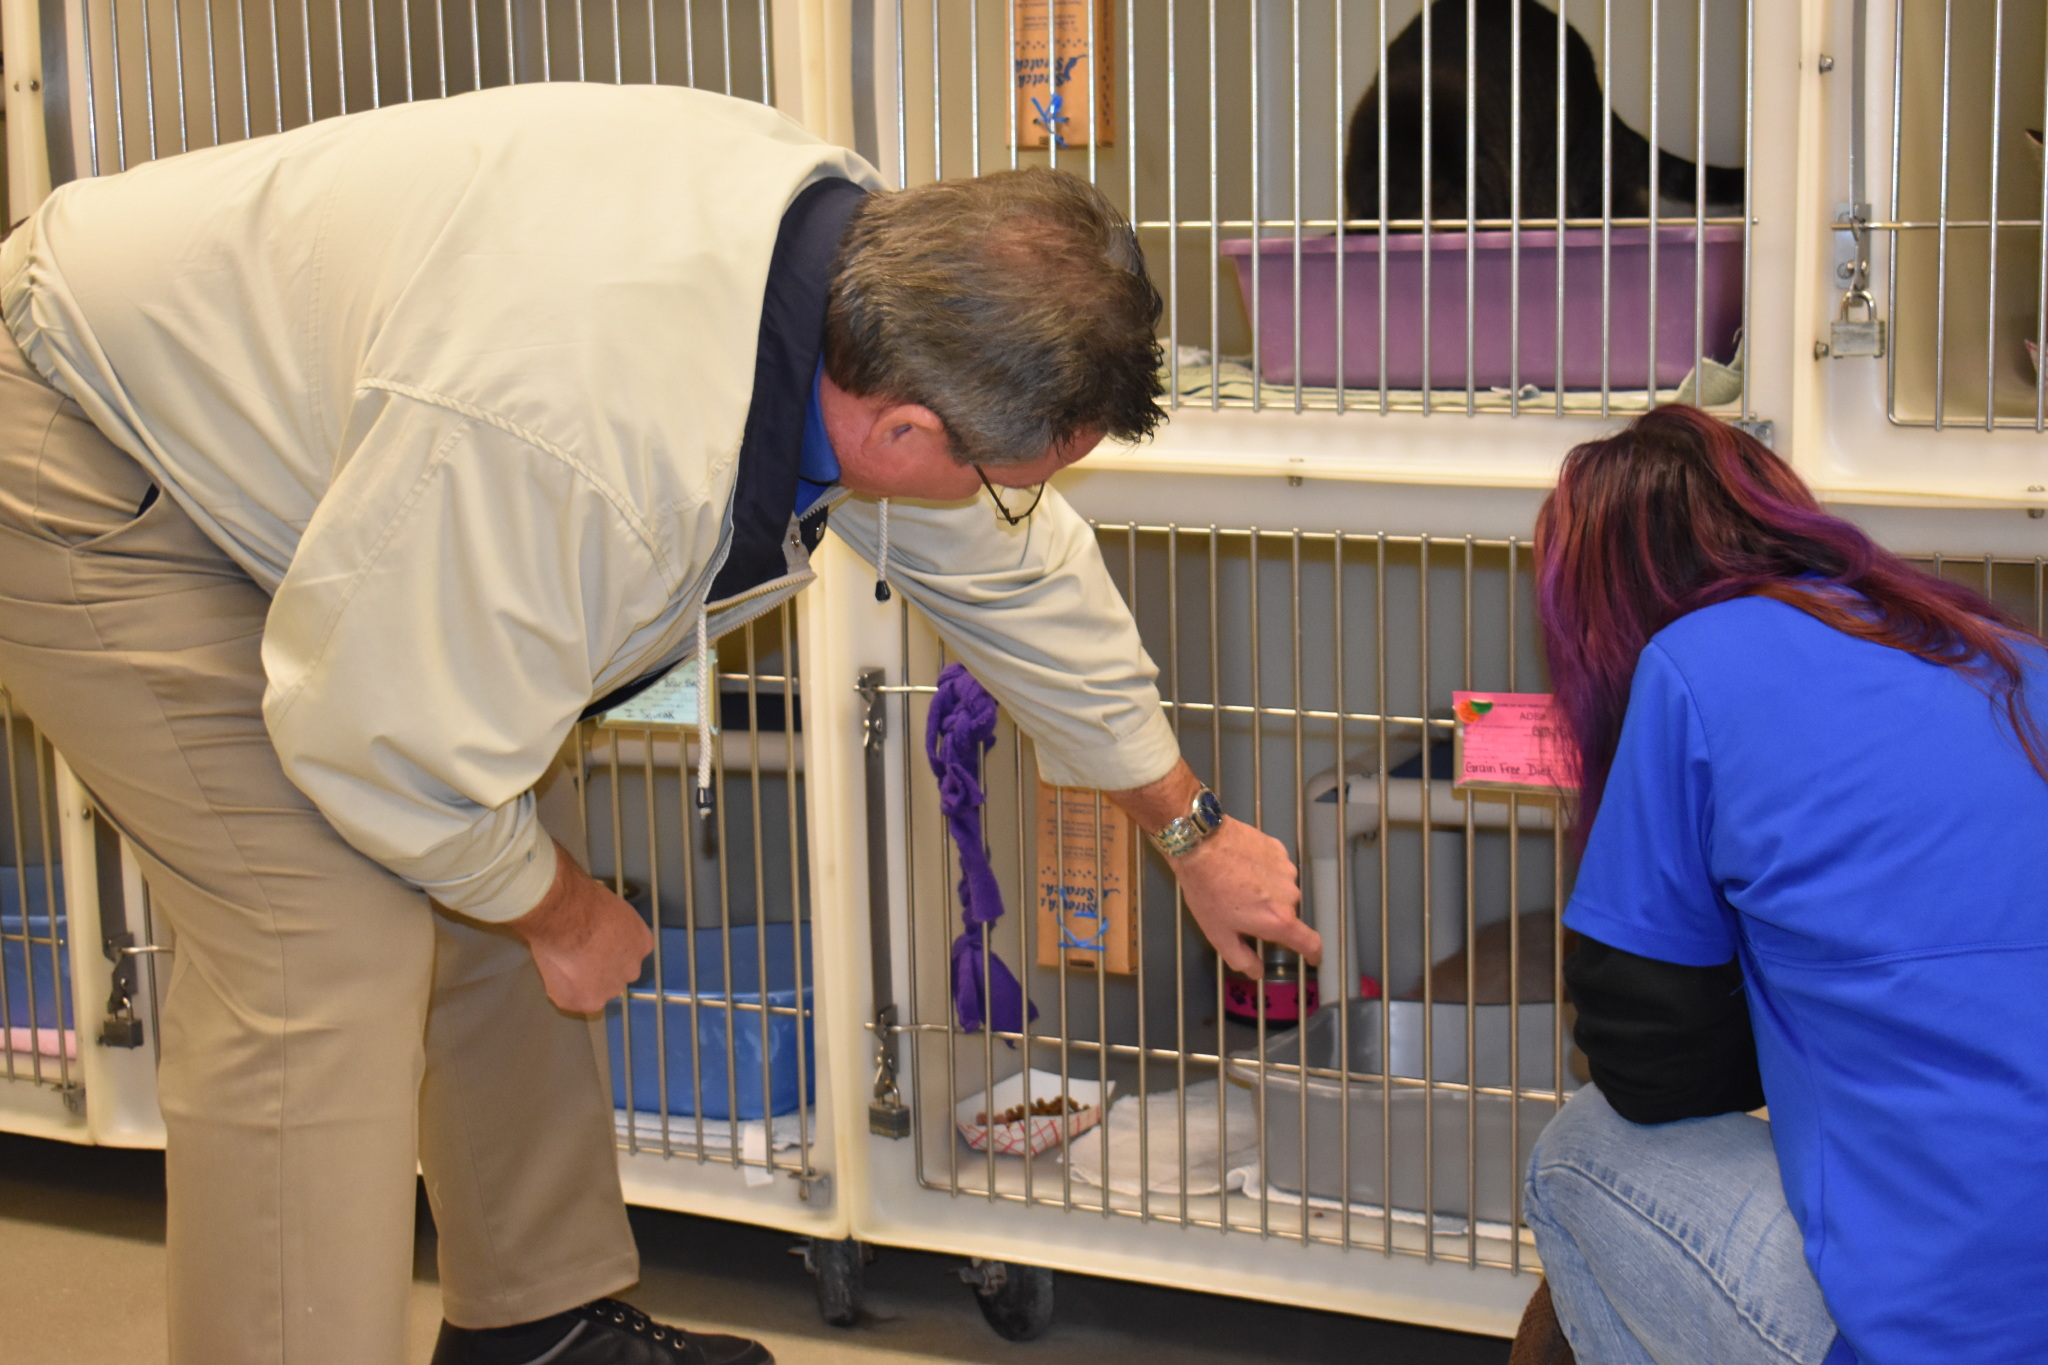 ANIMAL SHELTER 3.jpeg